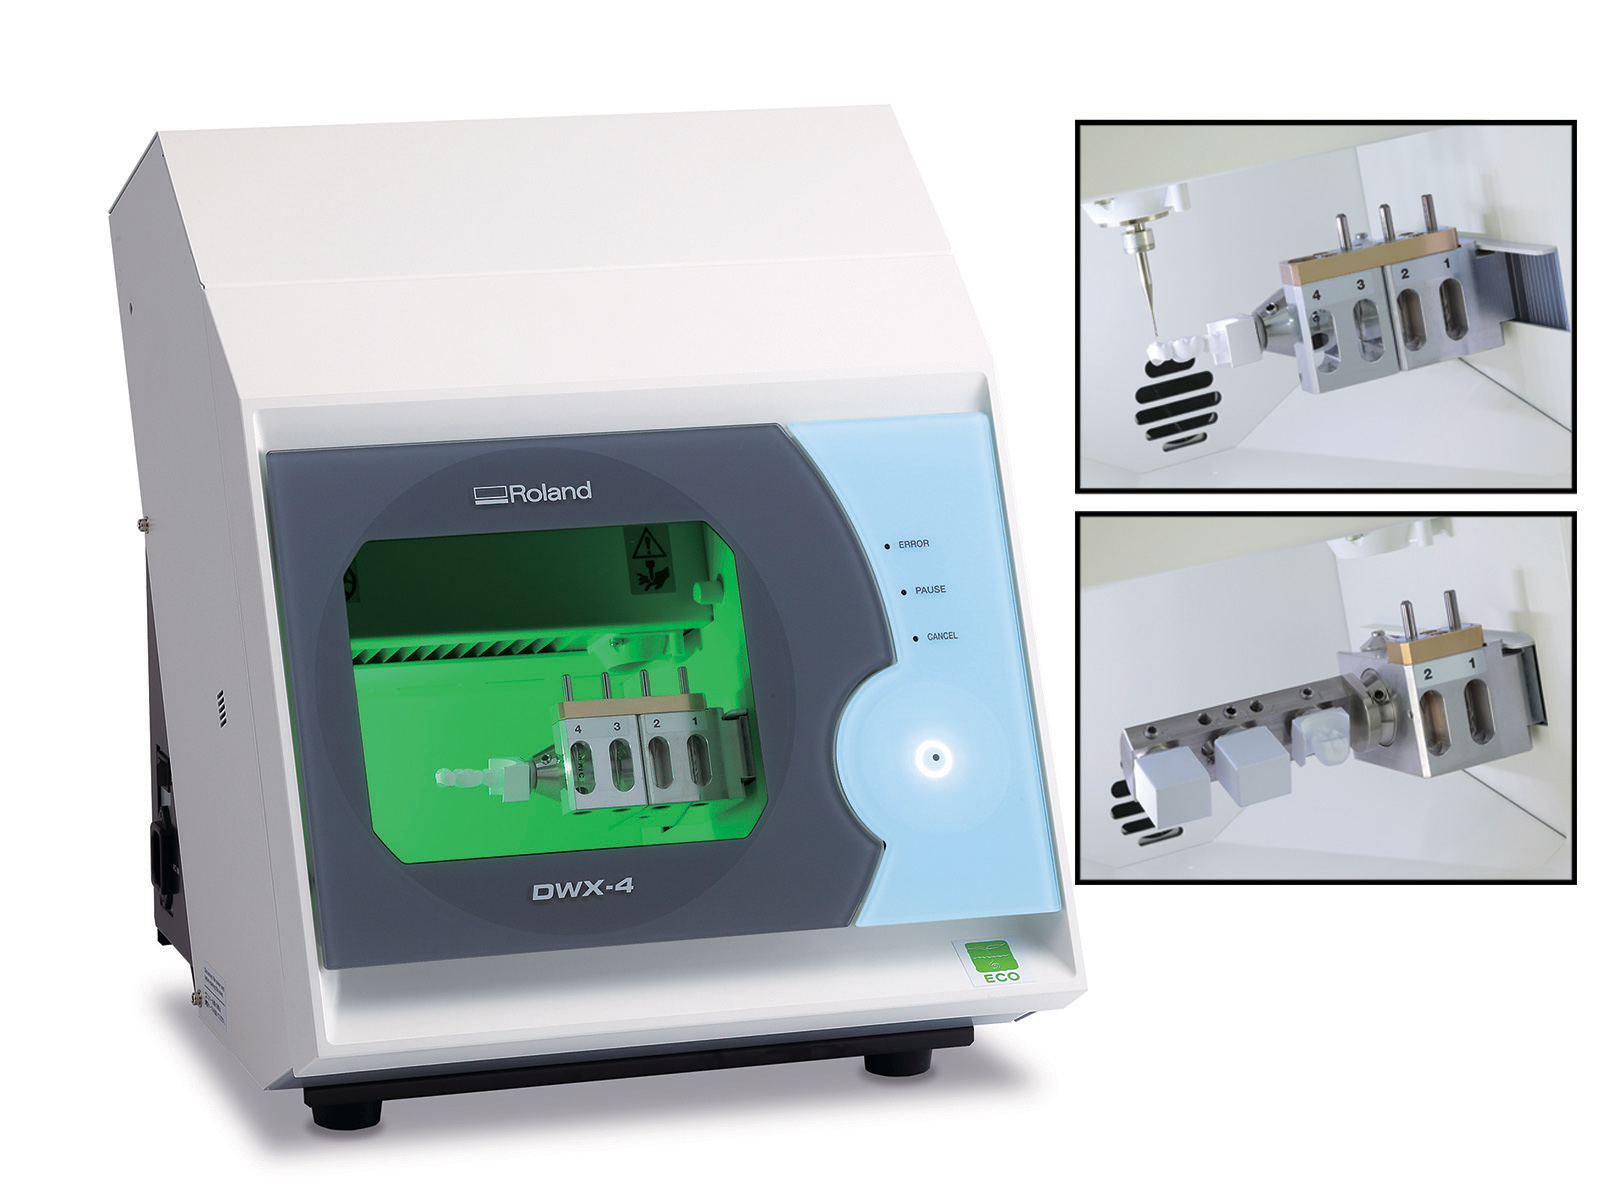 Roland Upgrades DWX-4 Compact Dental Mill